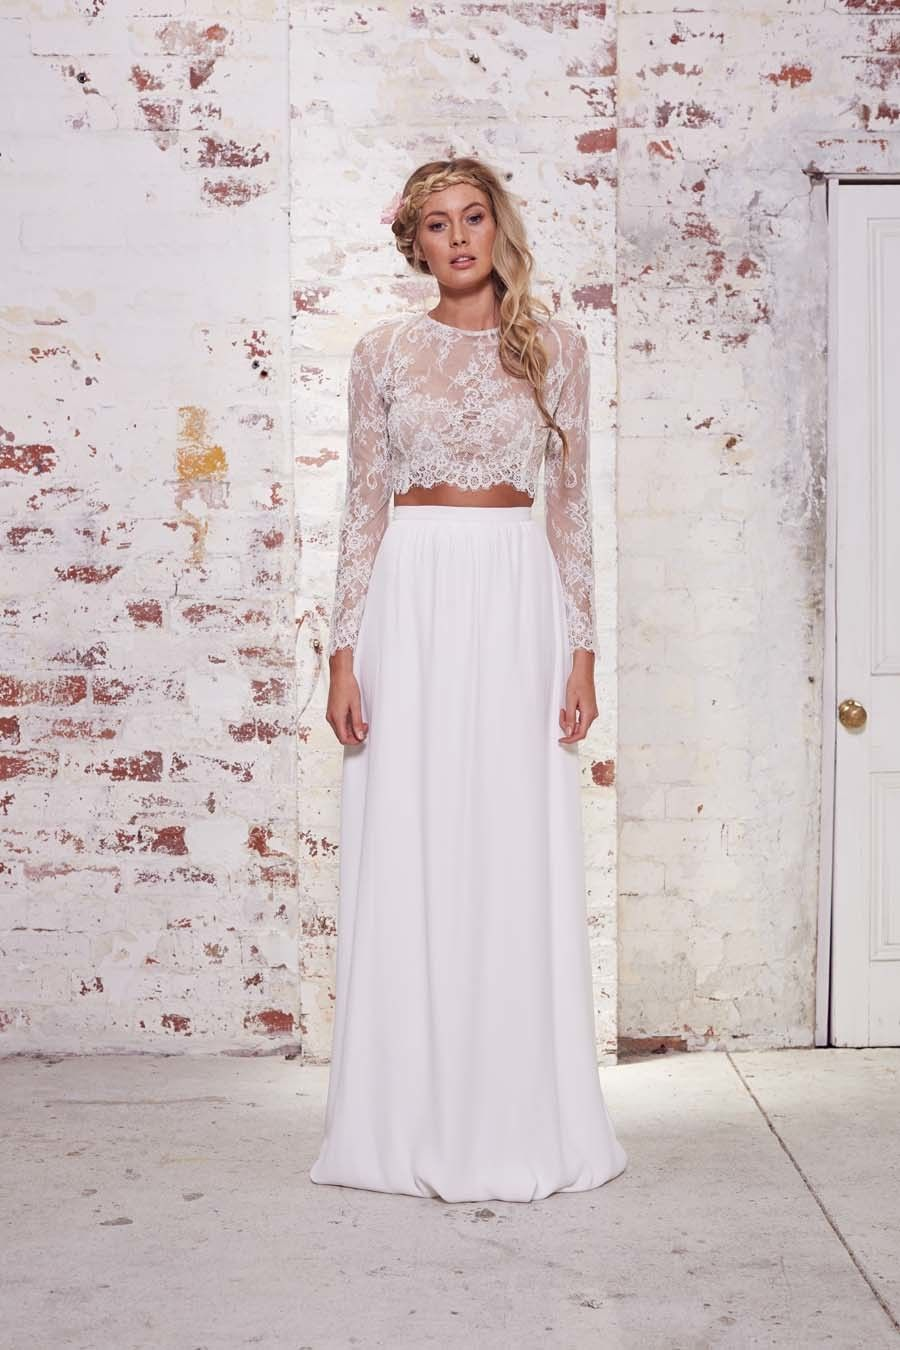 Karen Willis Holmes Style Me Pretty Lookbook Post | Eventos y Boda